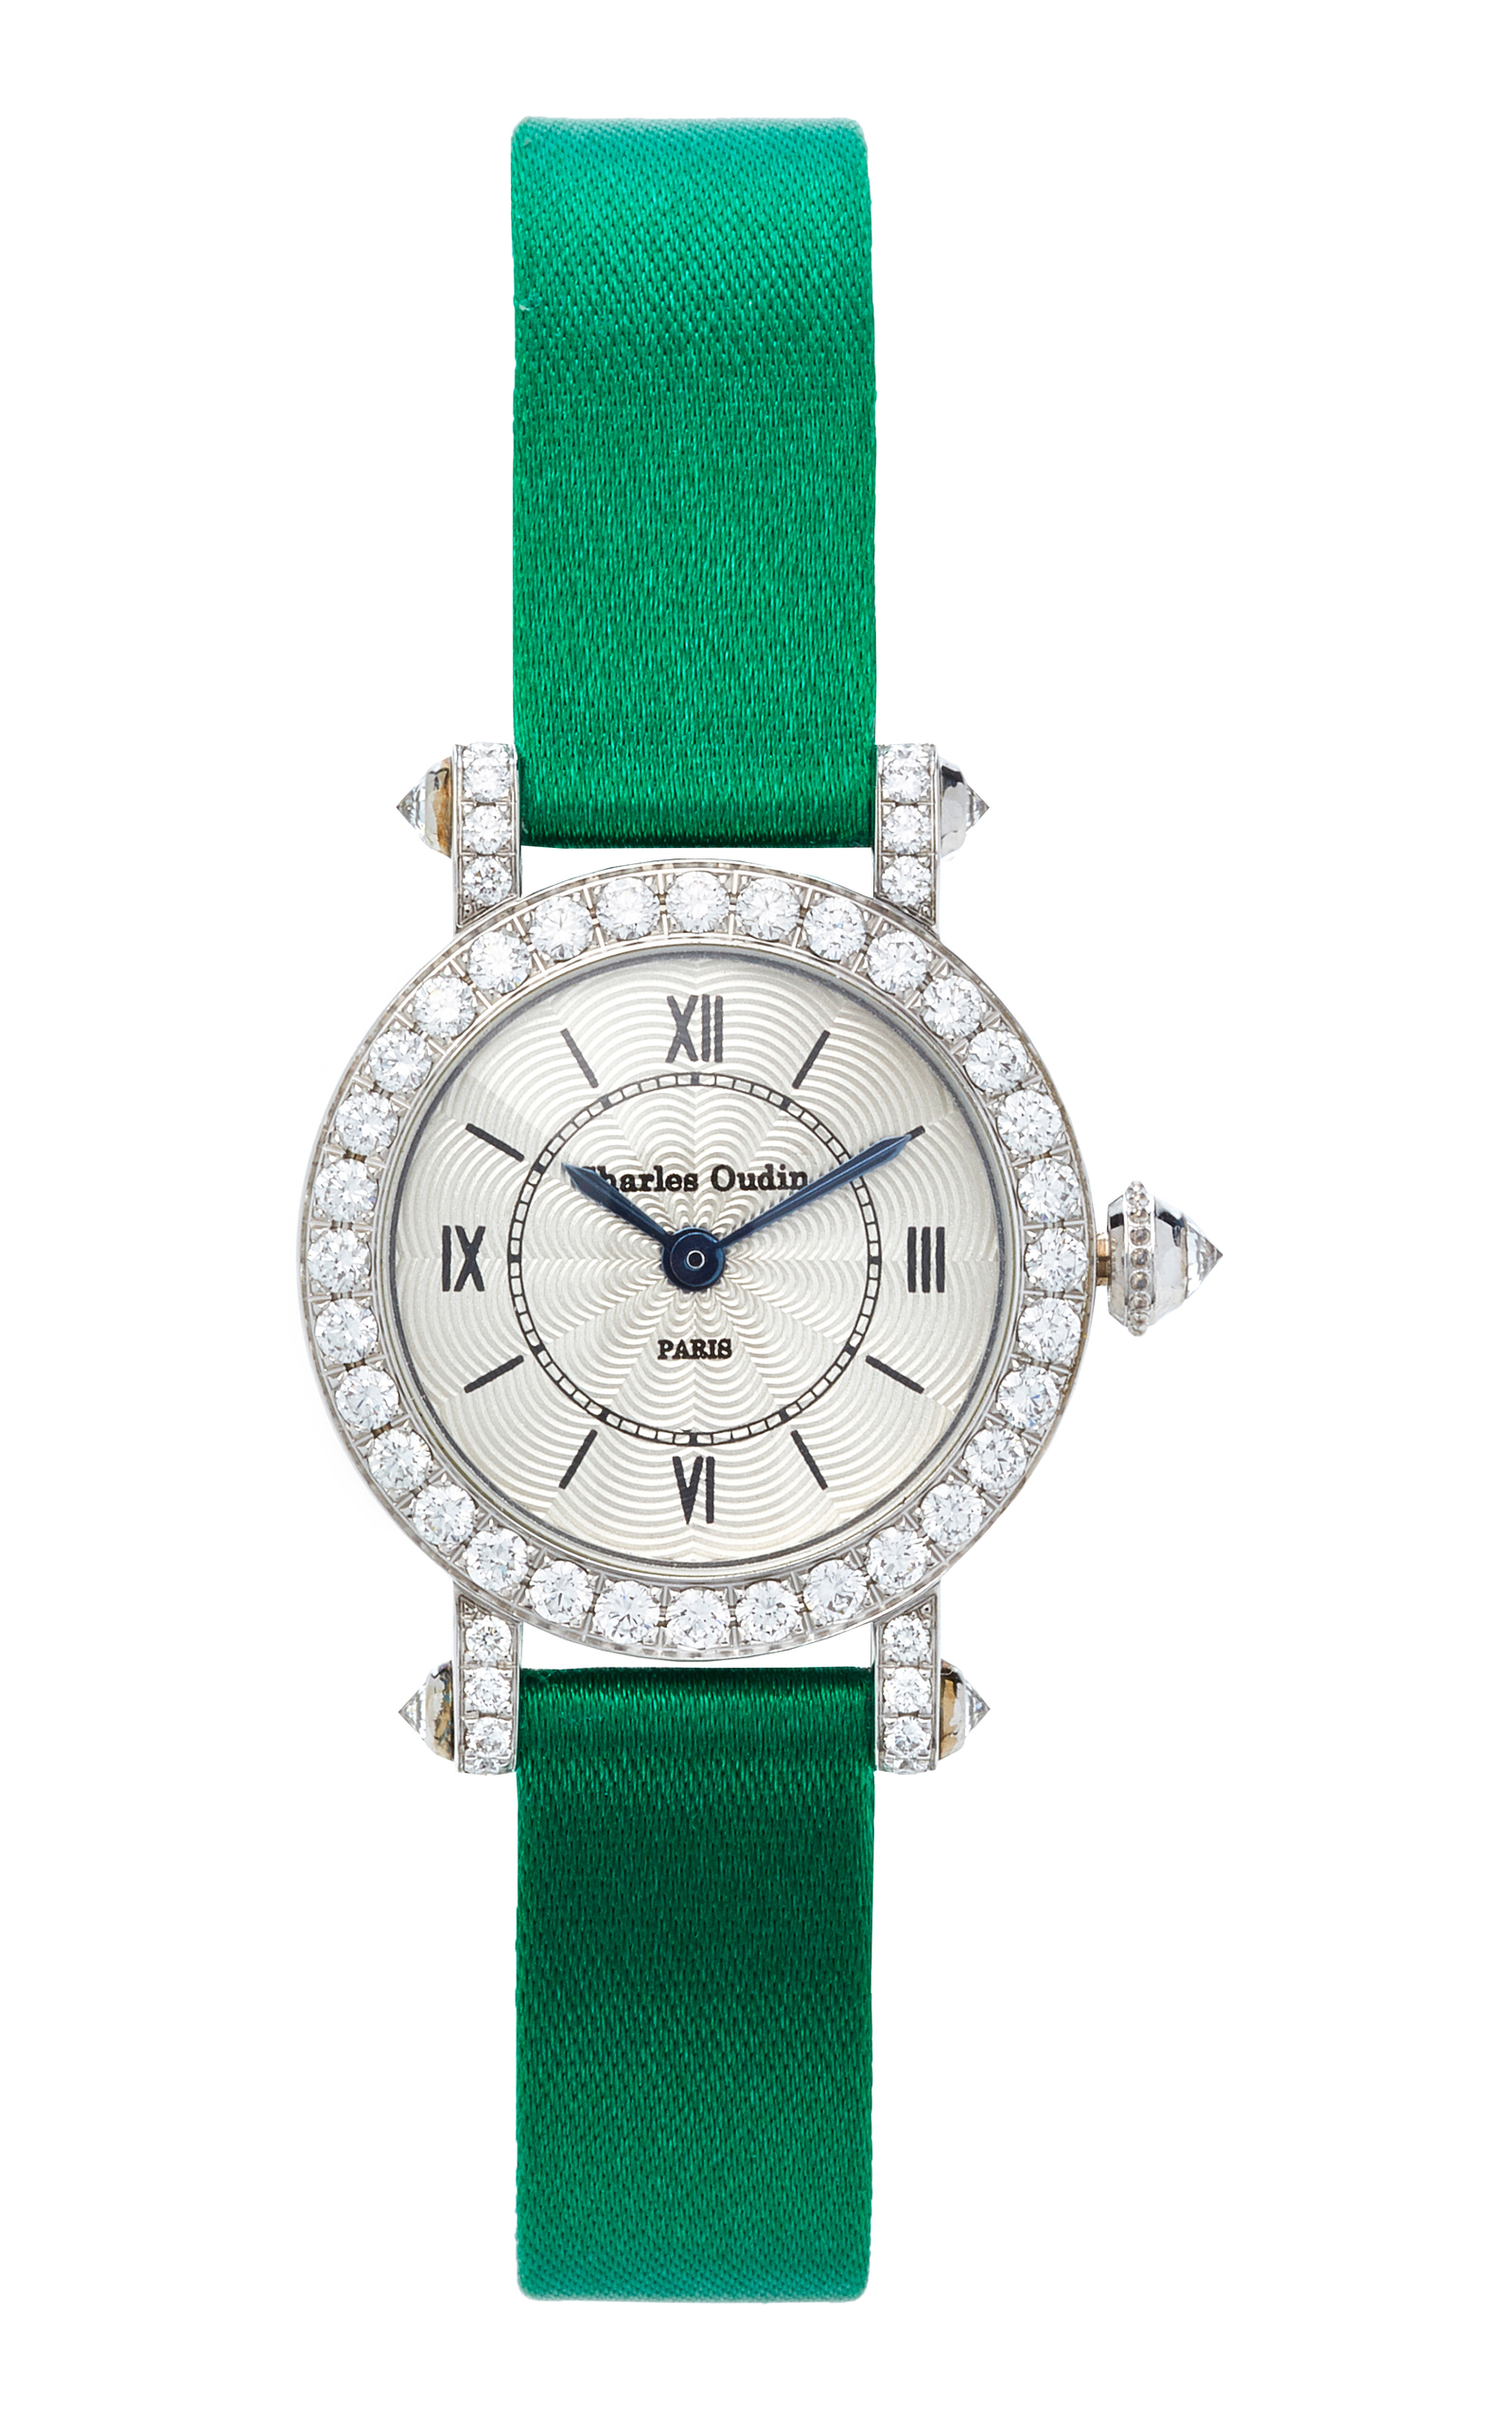 CHARLES OUDIN 18K White Gold Diamond Small Pansy Retro Watch